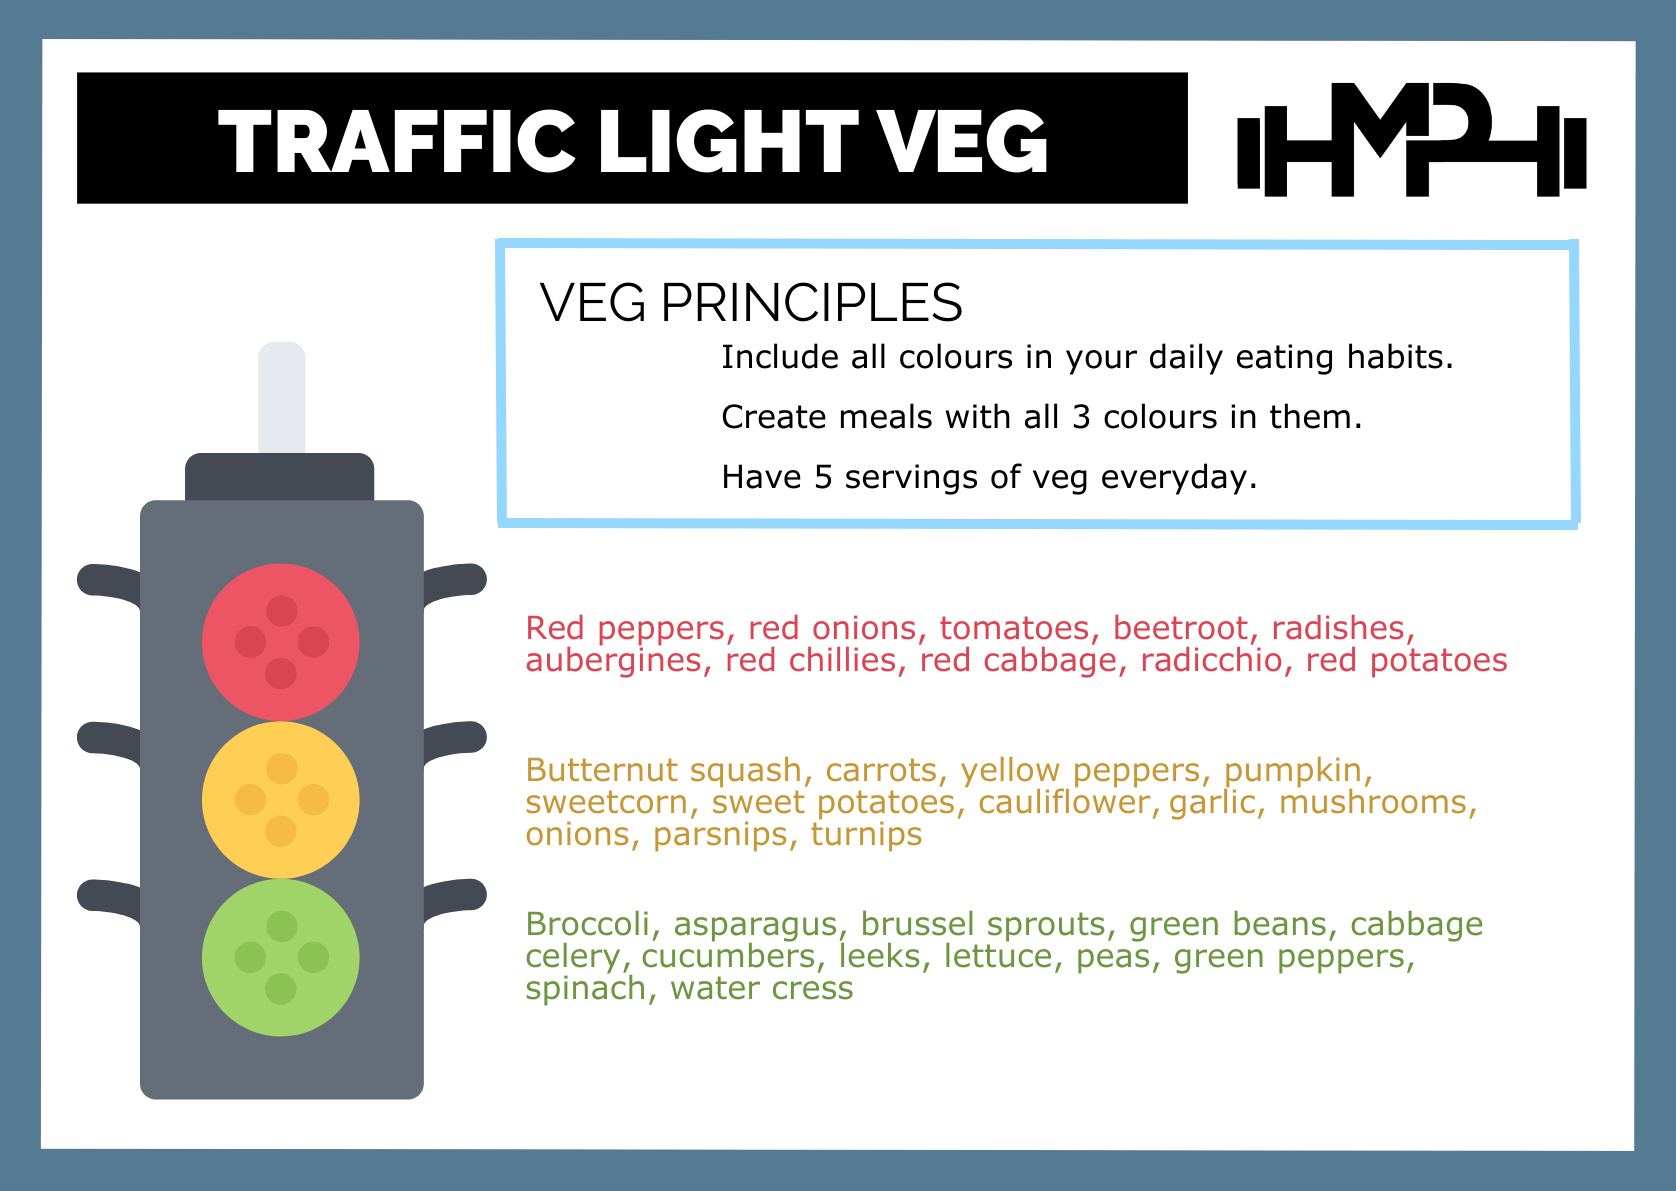 traffic light veg new font.jpg